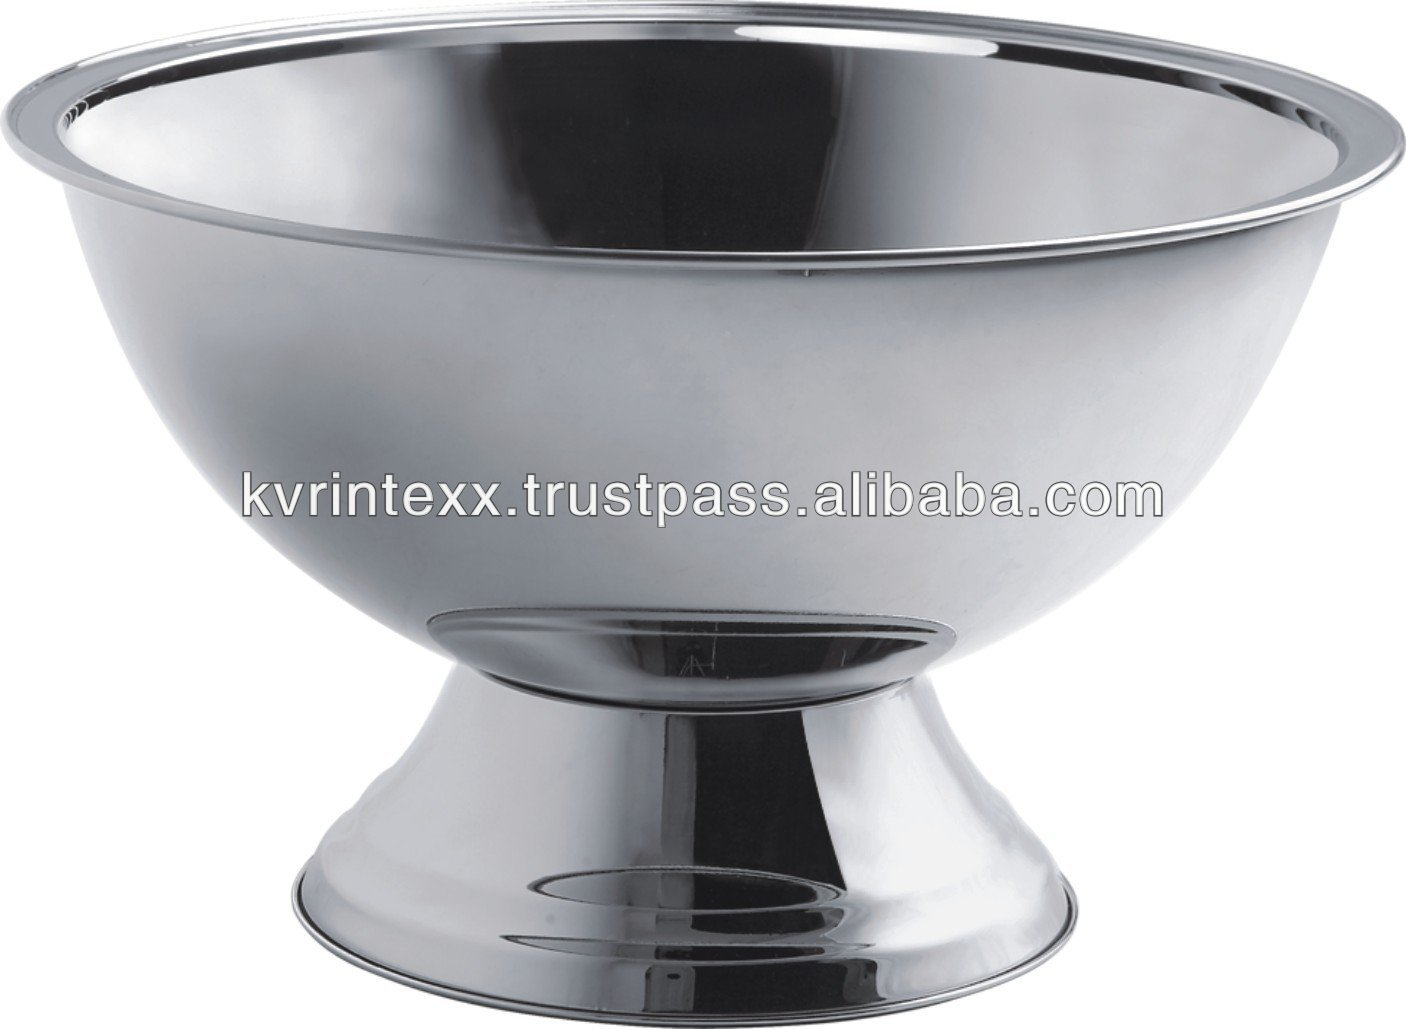 salad bowl with cover